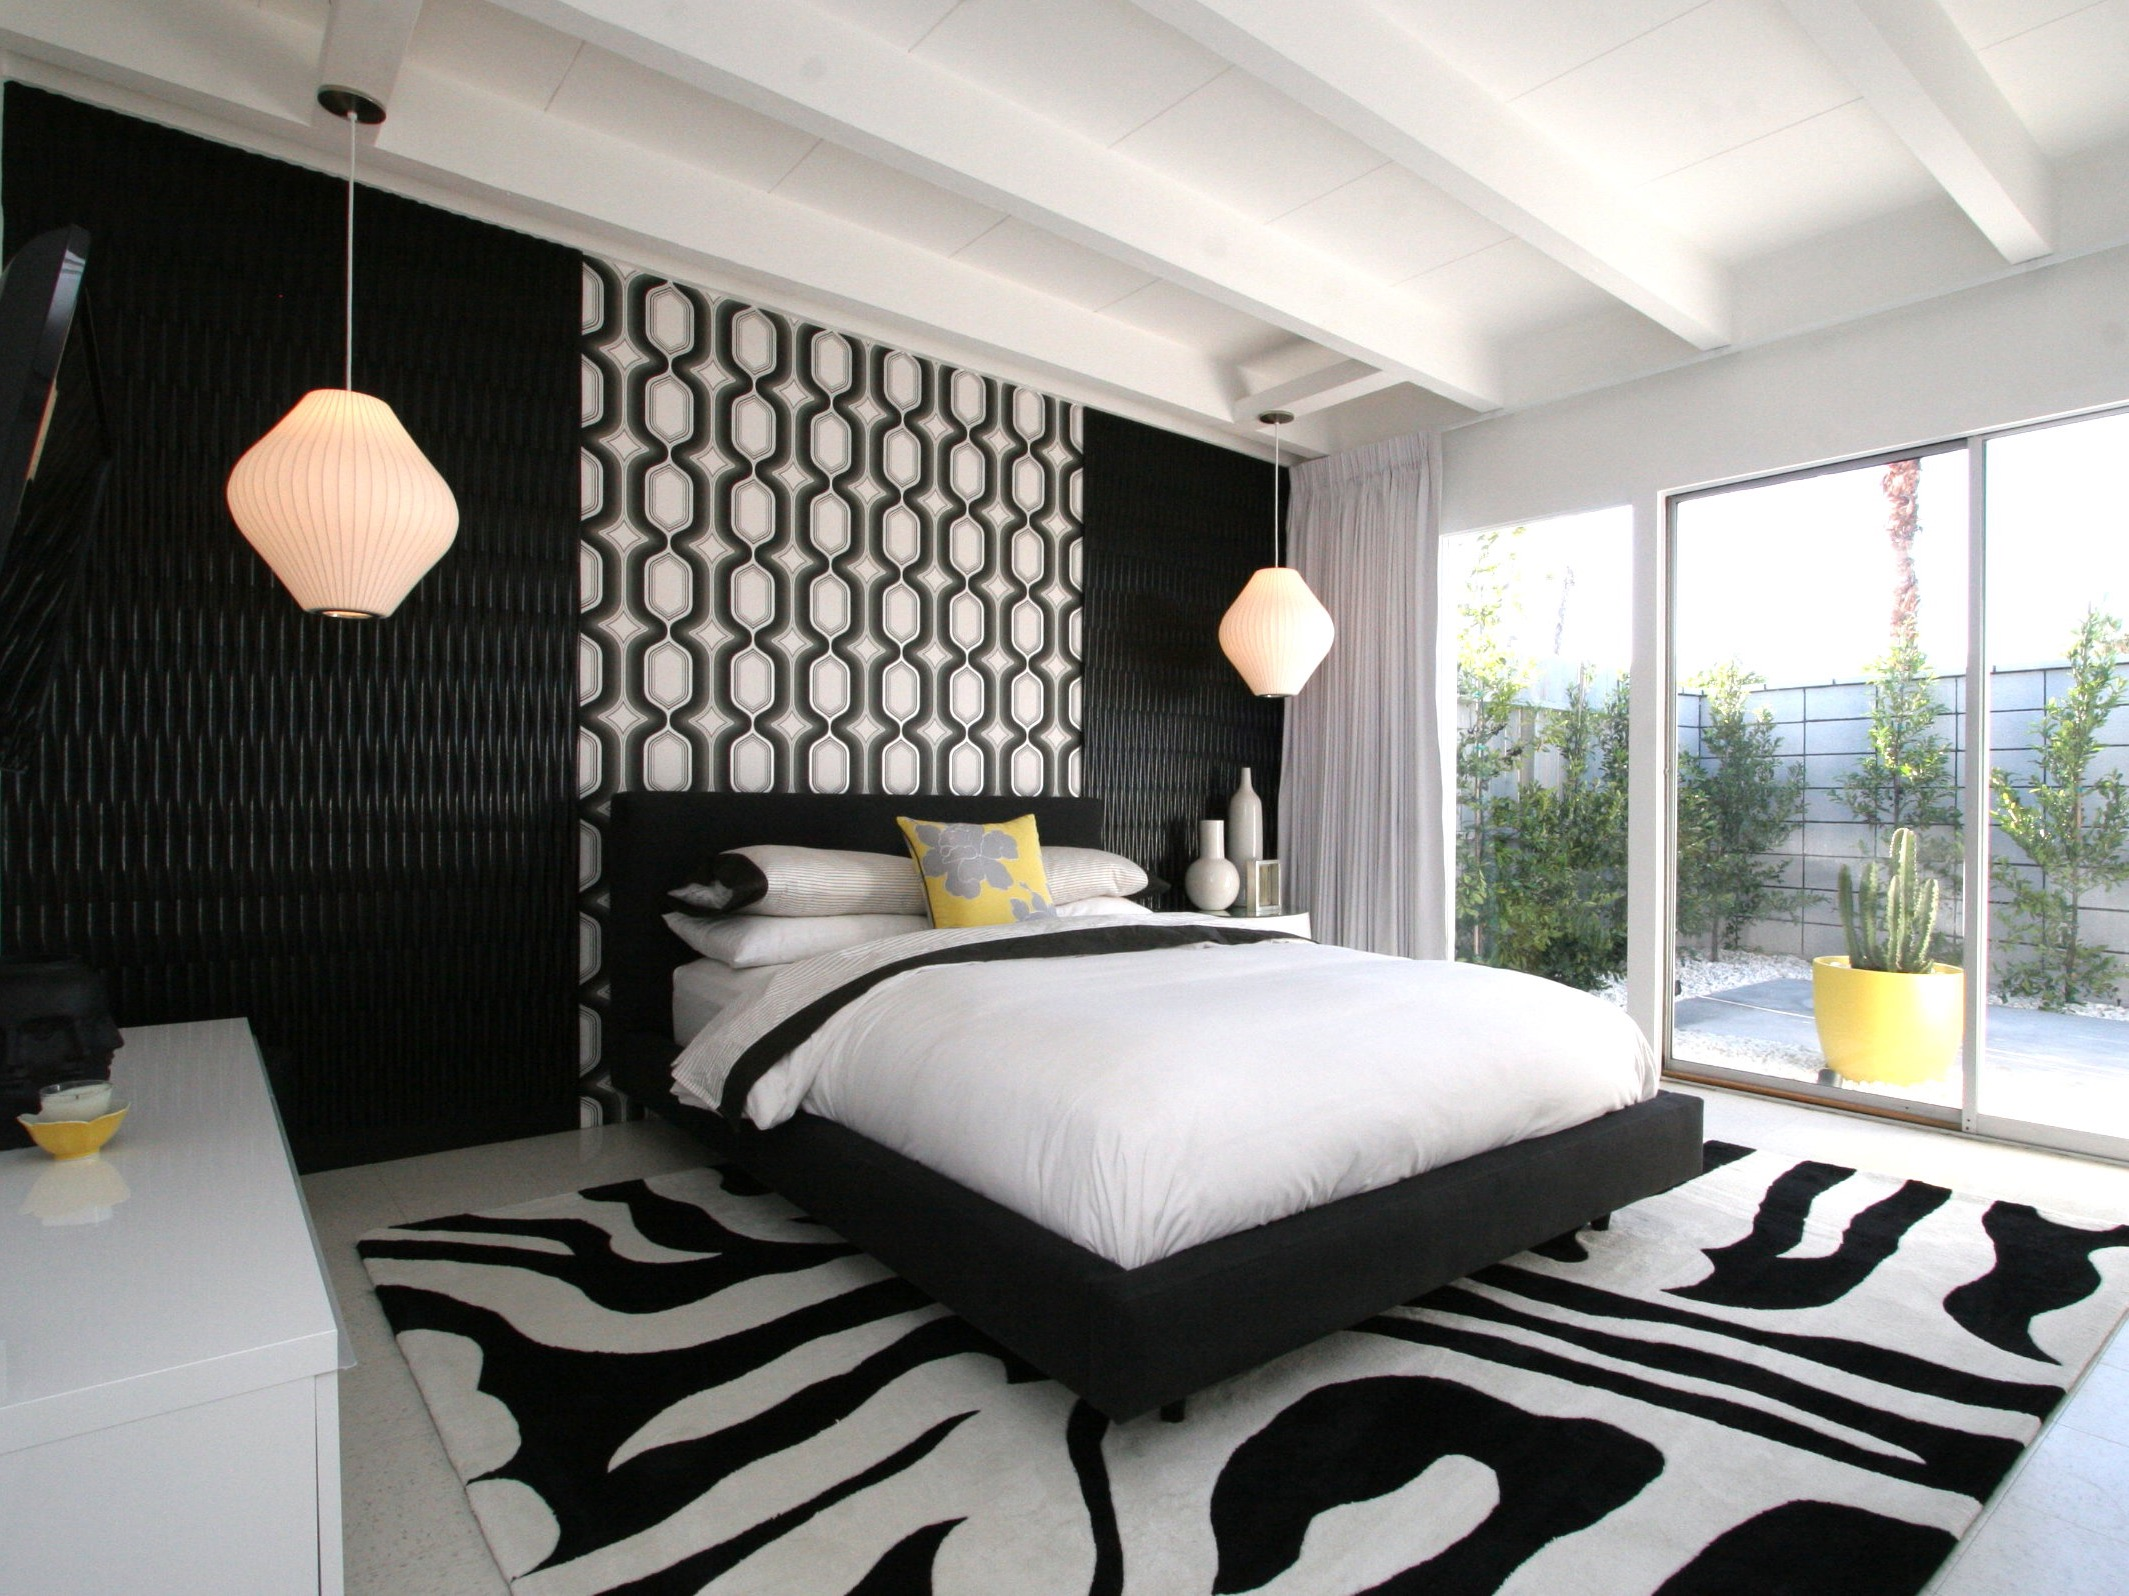 Black And White Modern Bedroom With Large Glass Door (Image 4 of 23)